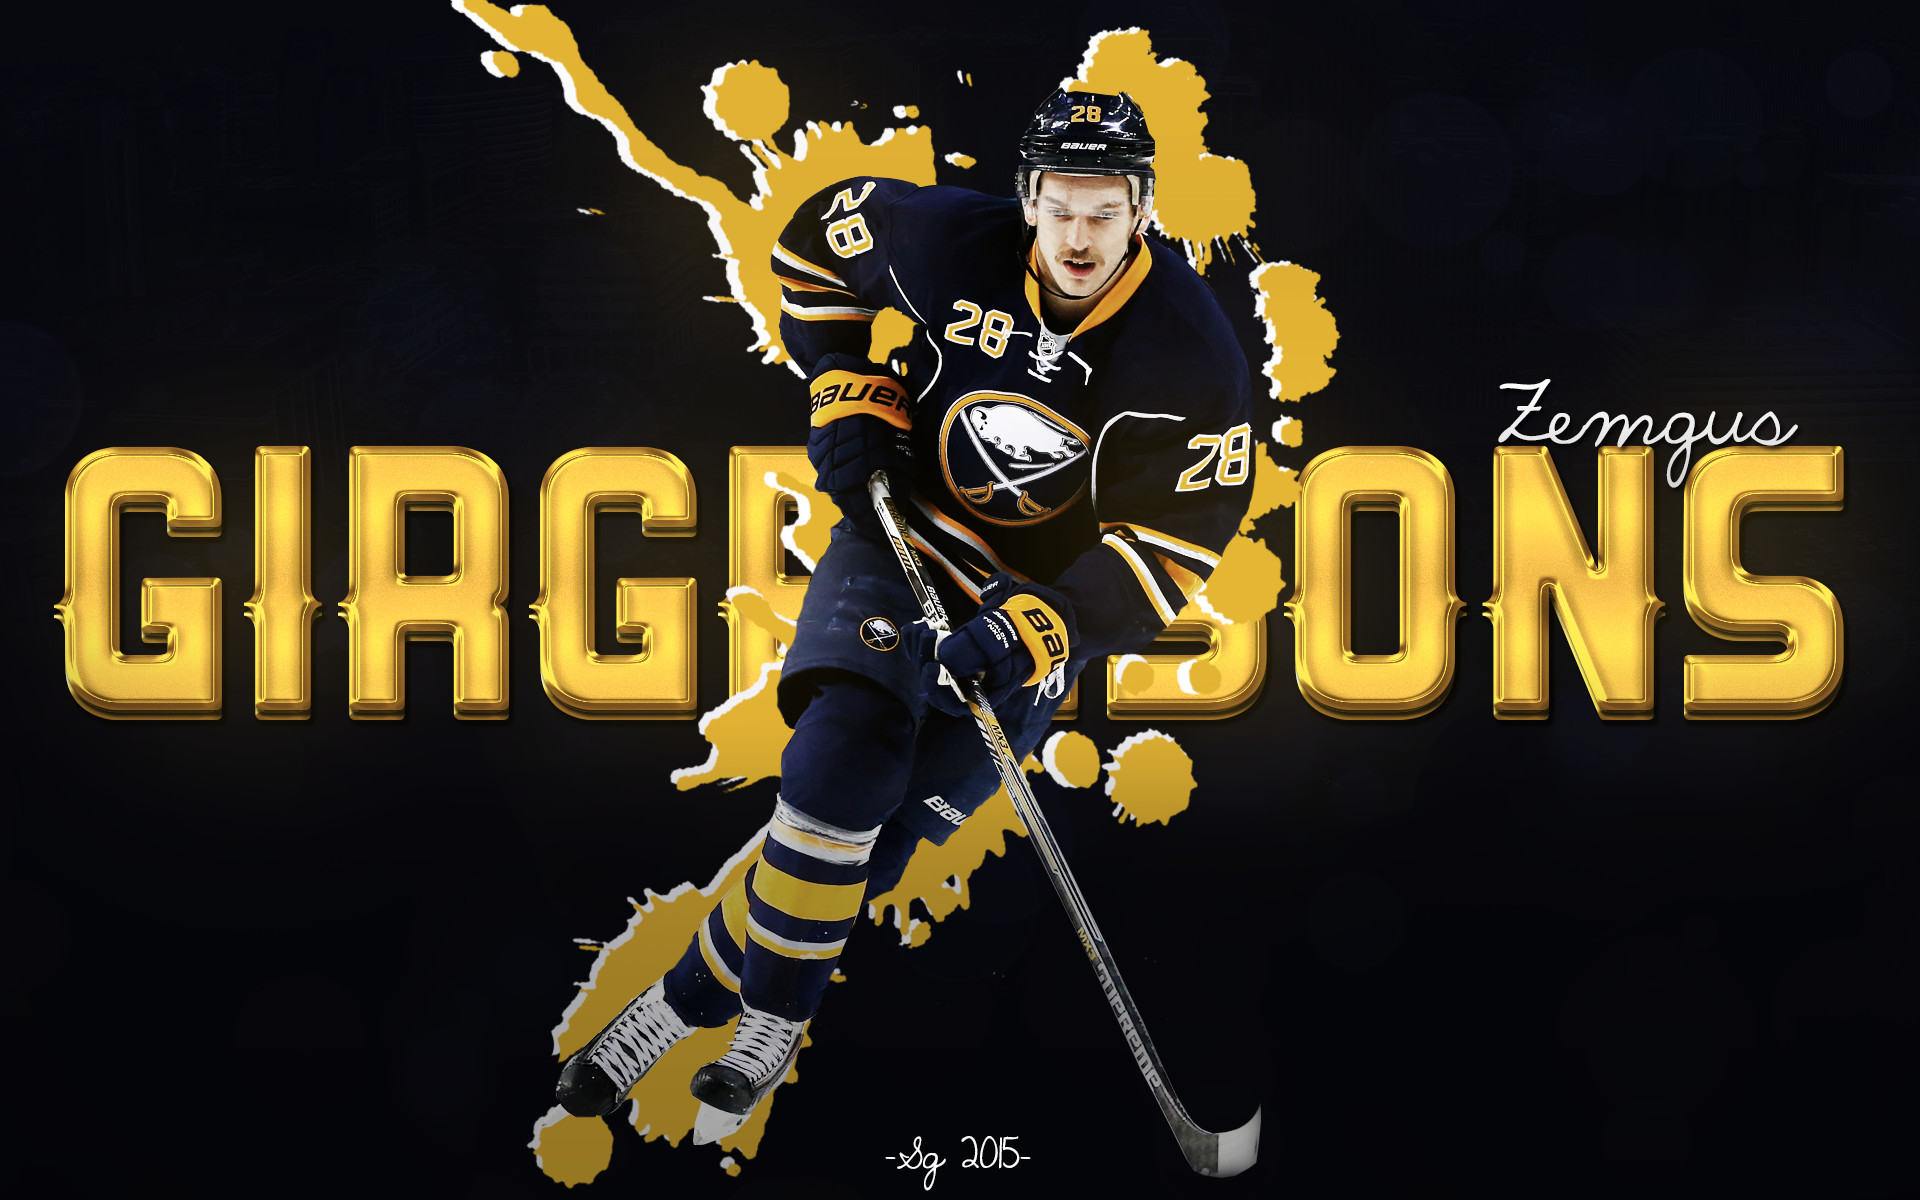 1920x1200 Zemgus Girgensons Buffalo Sabres Wallpaper by SGRGFX